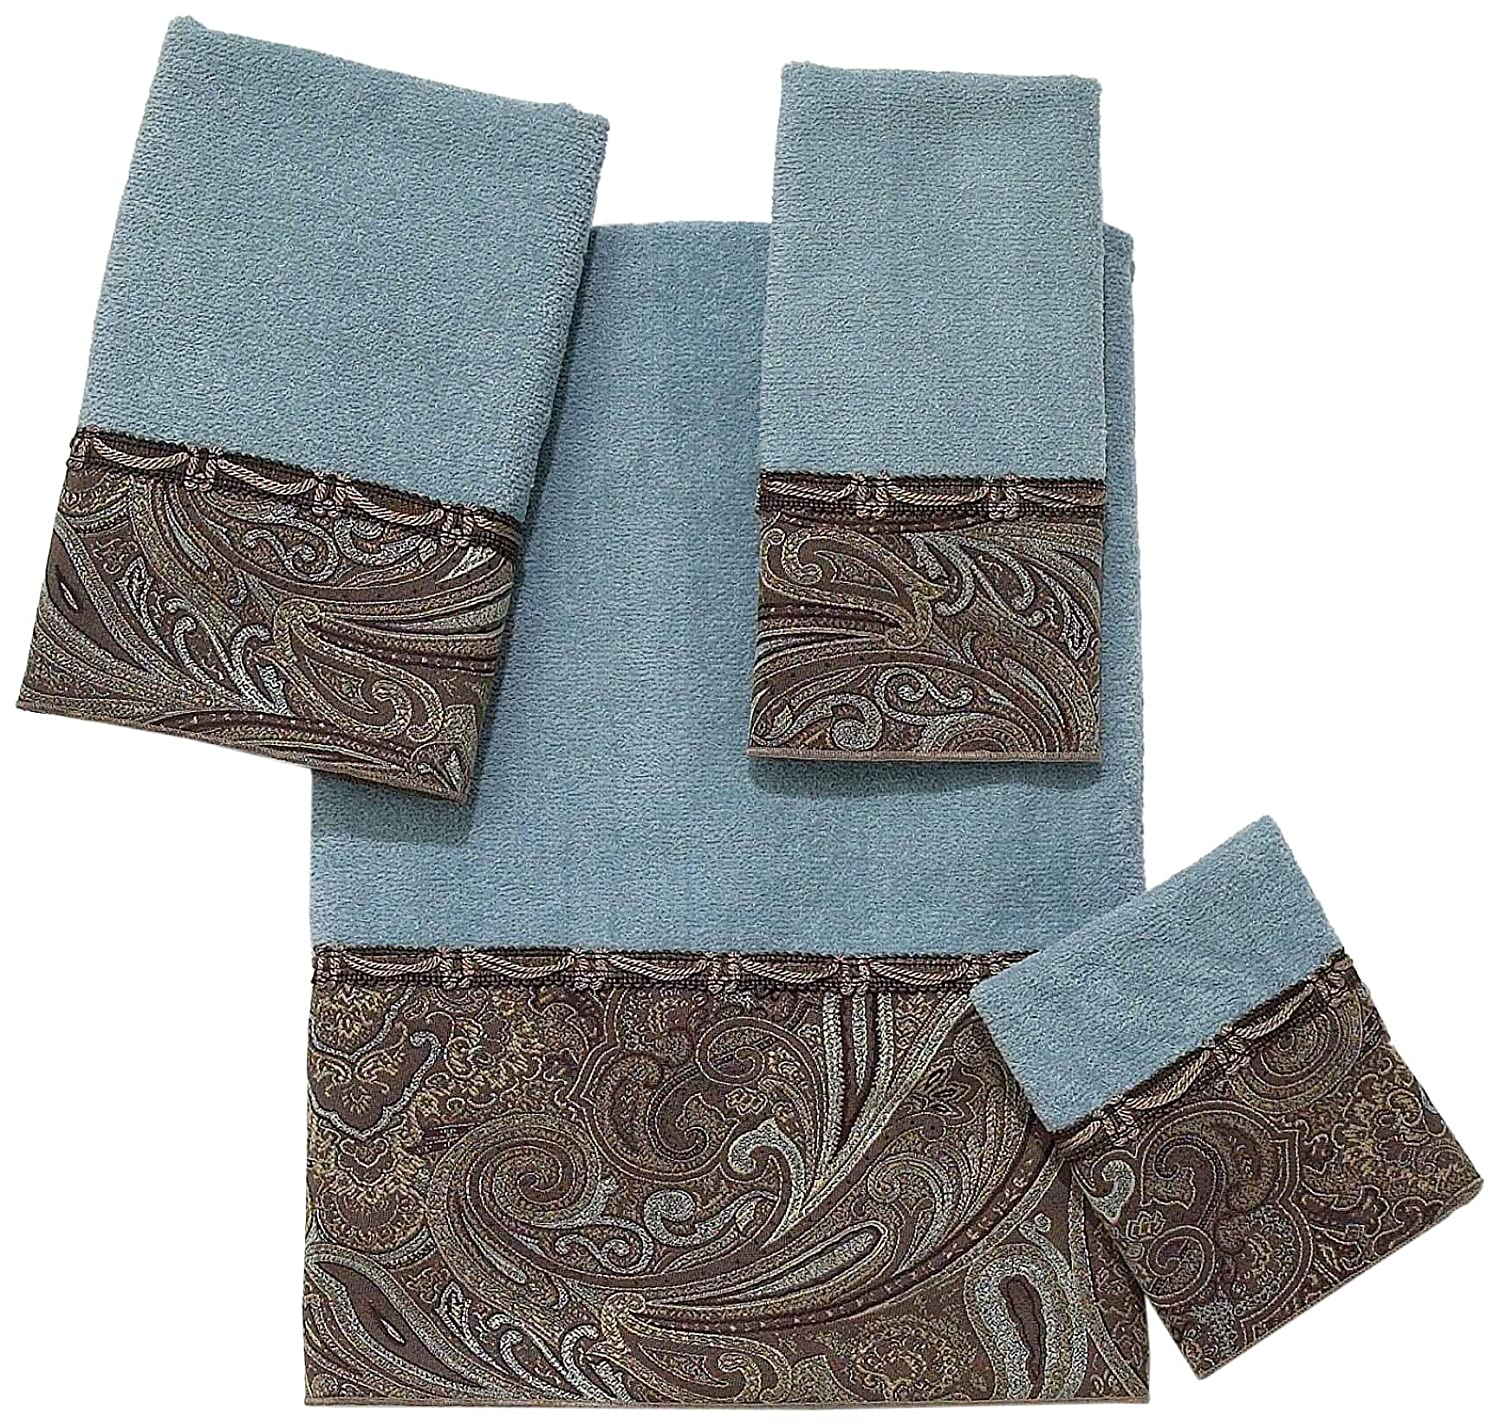 Avanti Linens BradfordEmbellished 4-Piece Decorative Towel Set Mineral